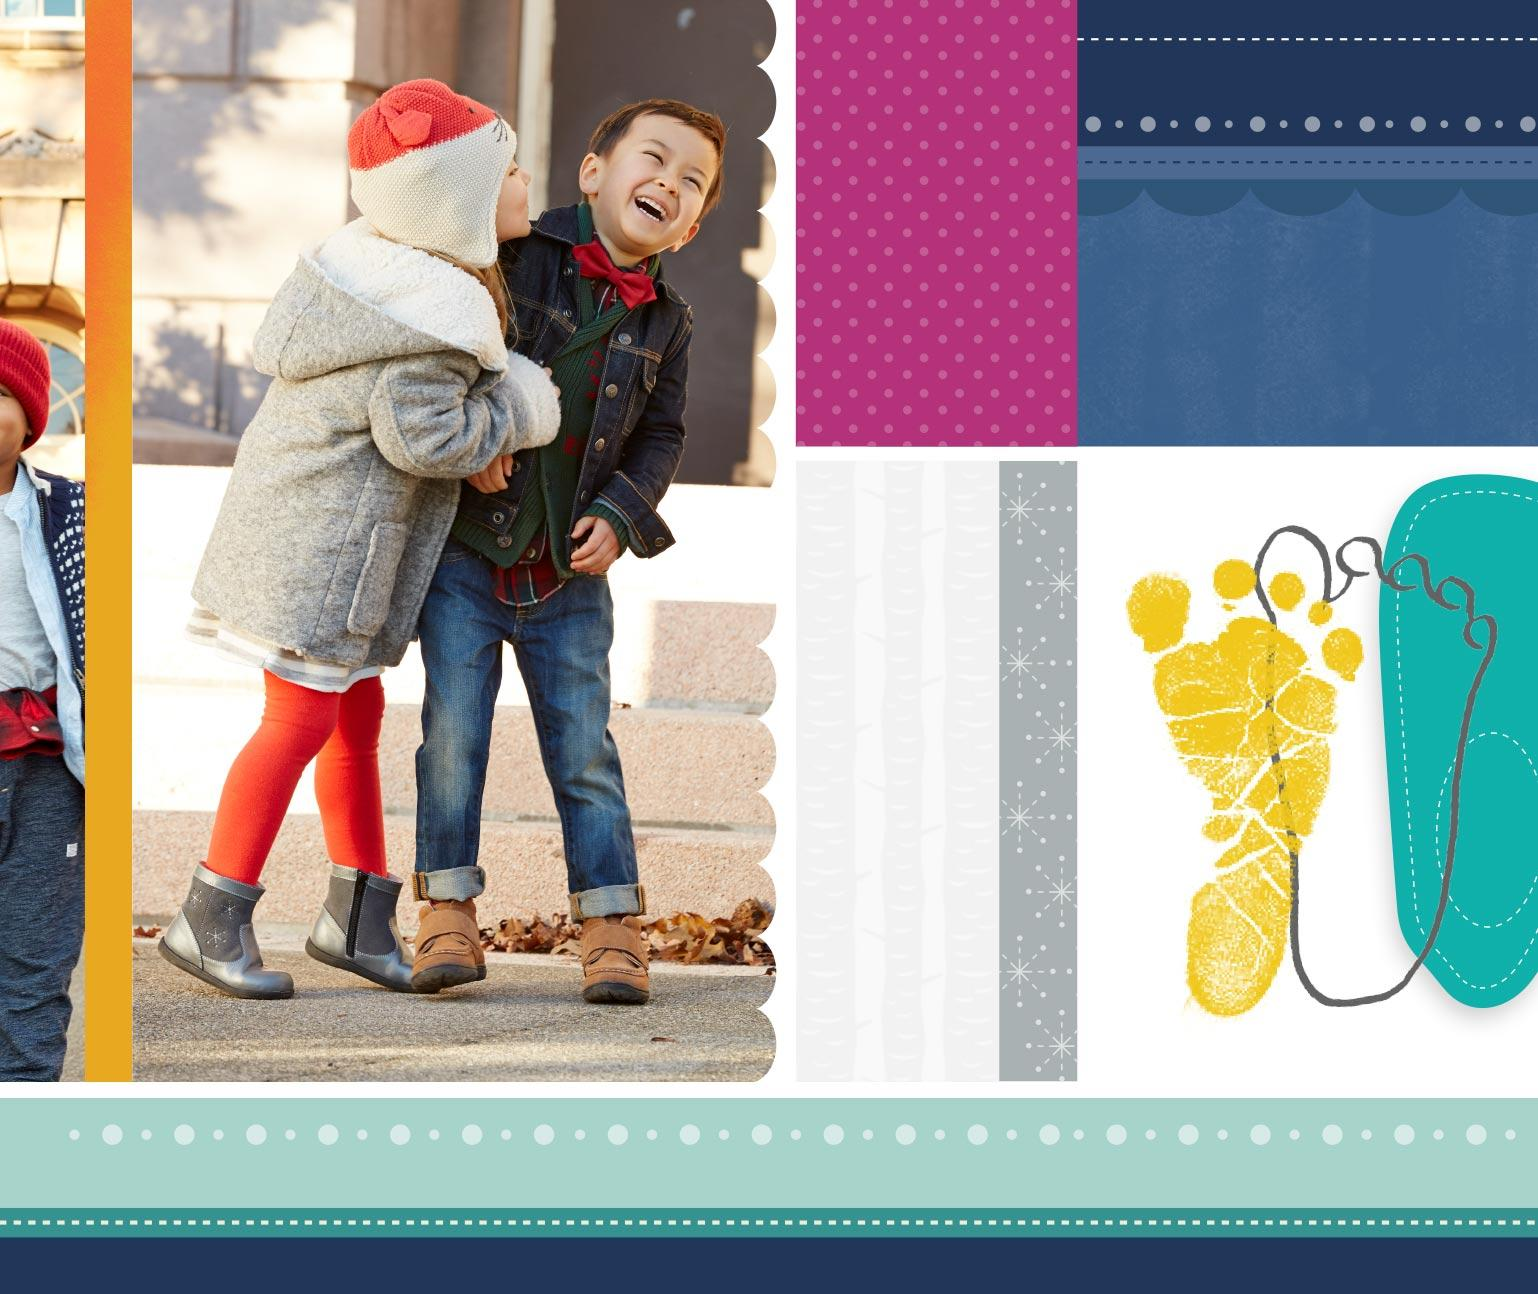 Two children laughing on a sidewalk, baby foot prints, custom photography and design